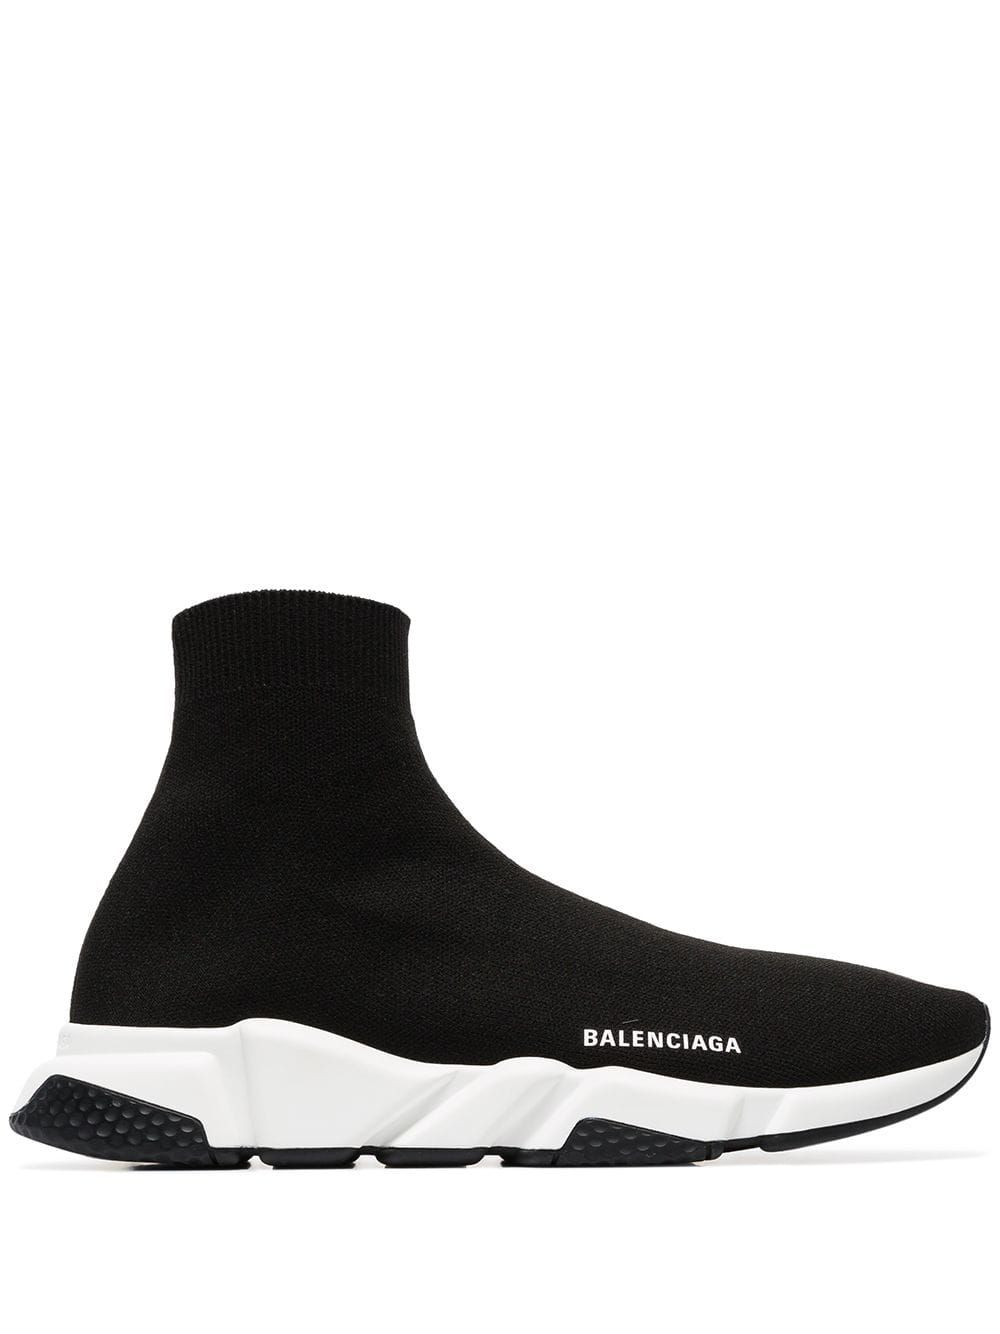 Balenciaga black Speed knitted high top sock sneakers in